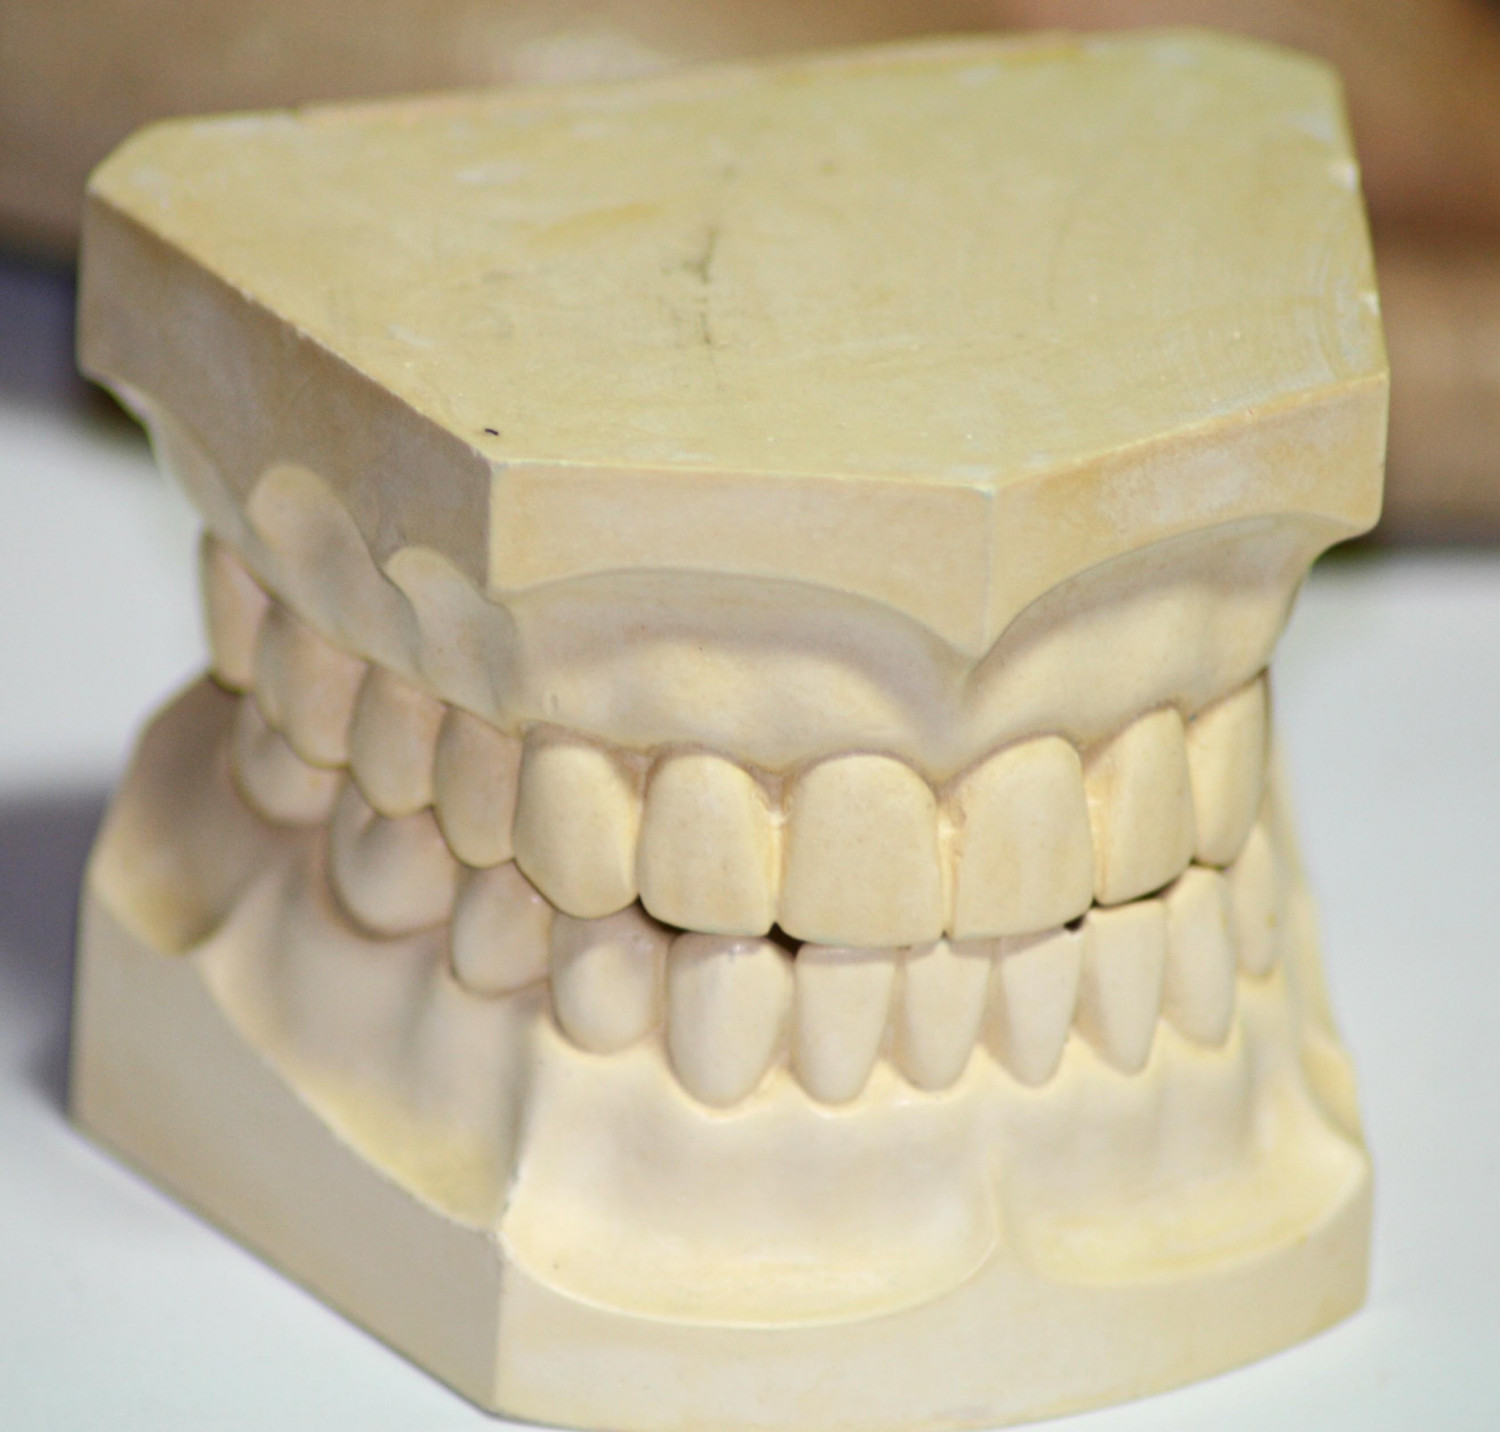 Proper Dental Impression should look like this... Stone, trimmed, upper and lower and bubble free.